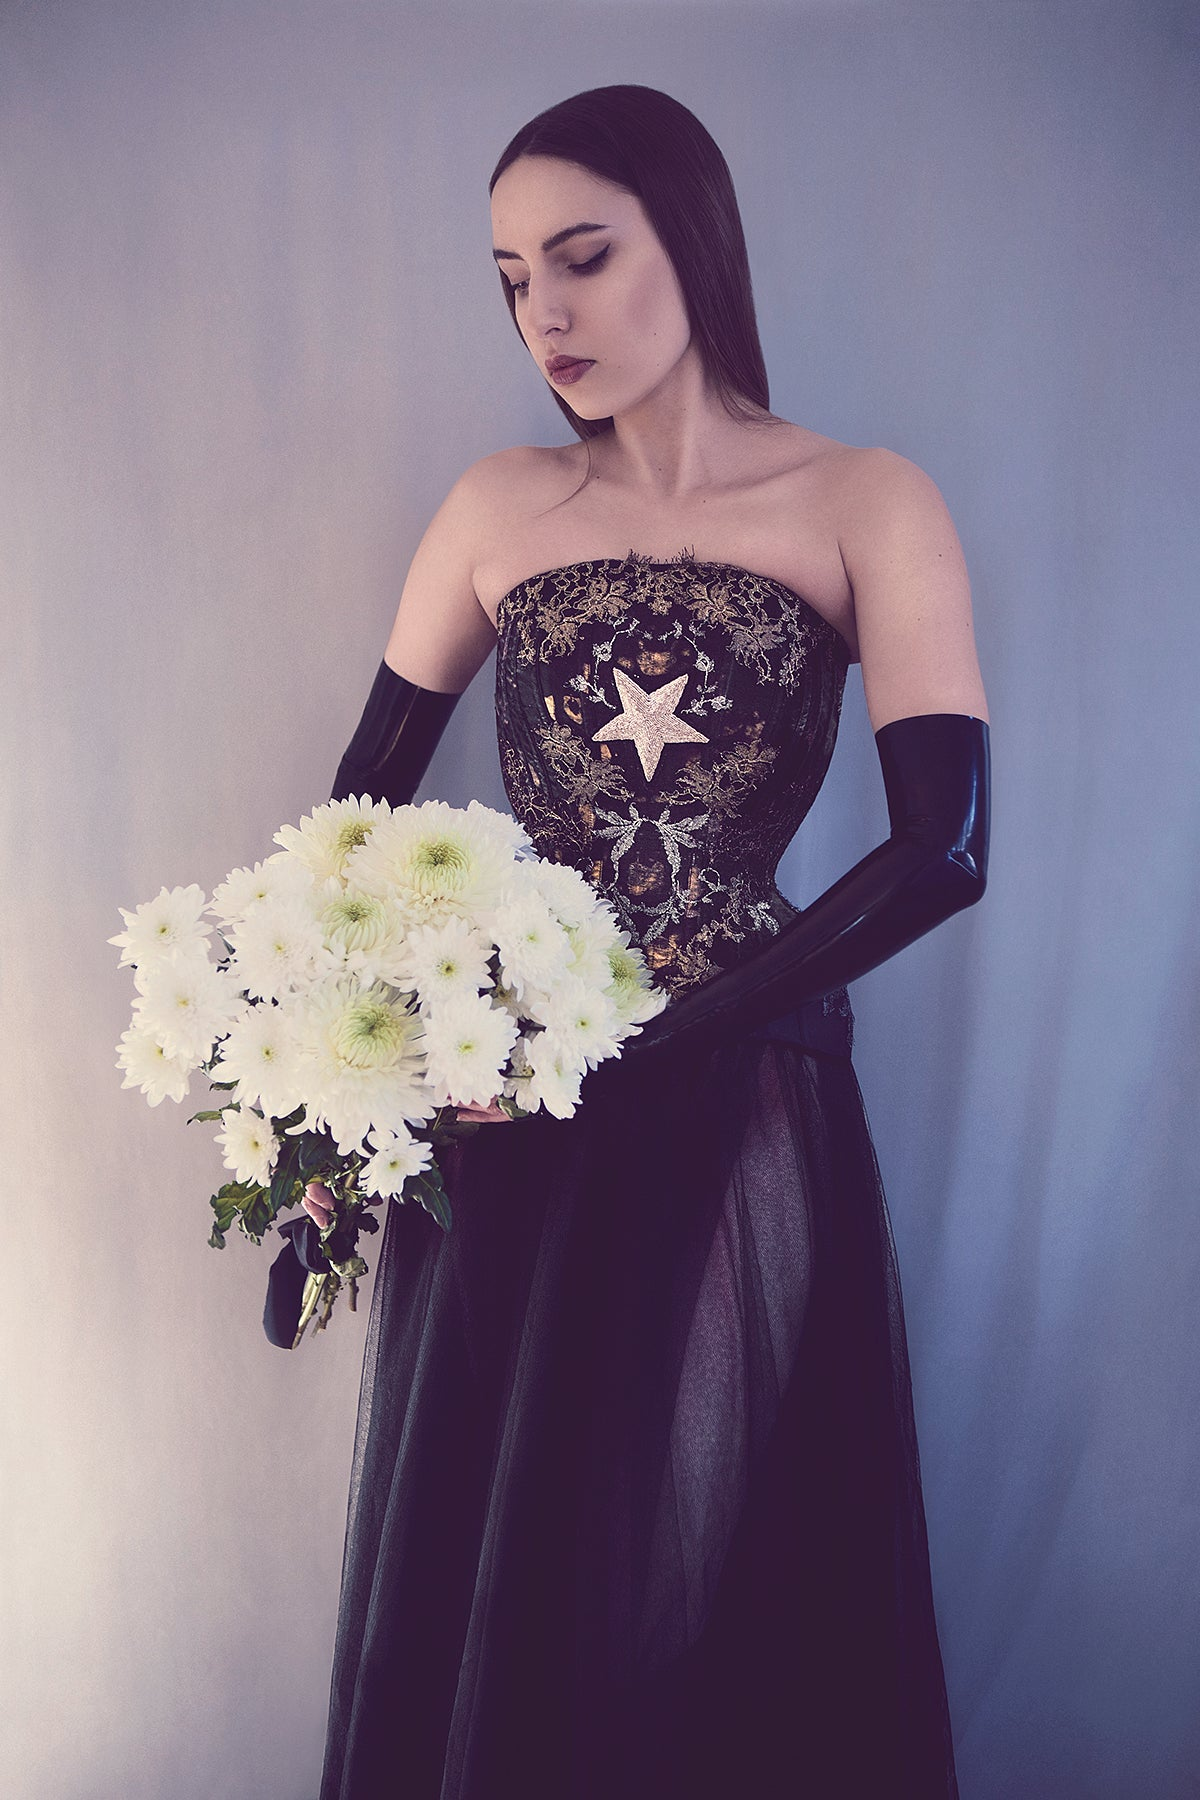 'Hecate' High Neck Overbust Corset With Lace Appliqué & Antique Bullionwork